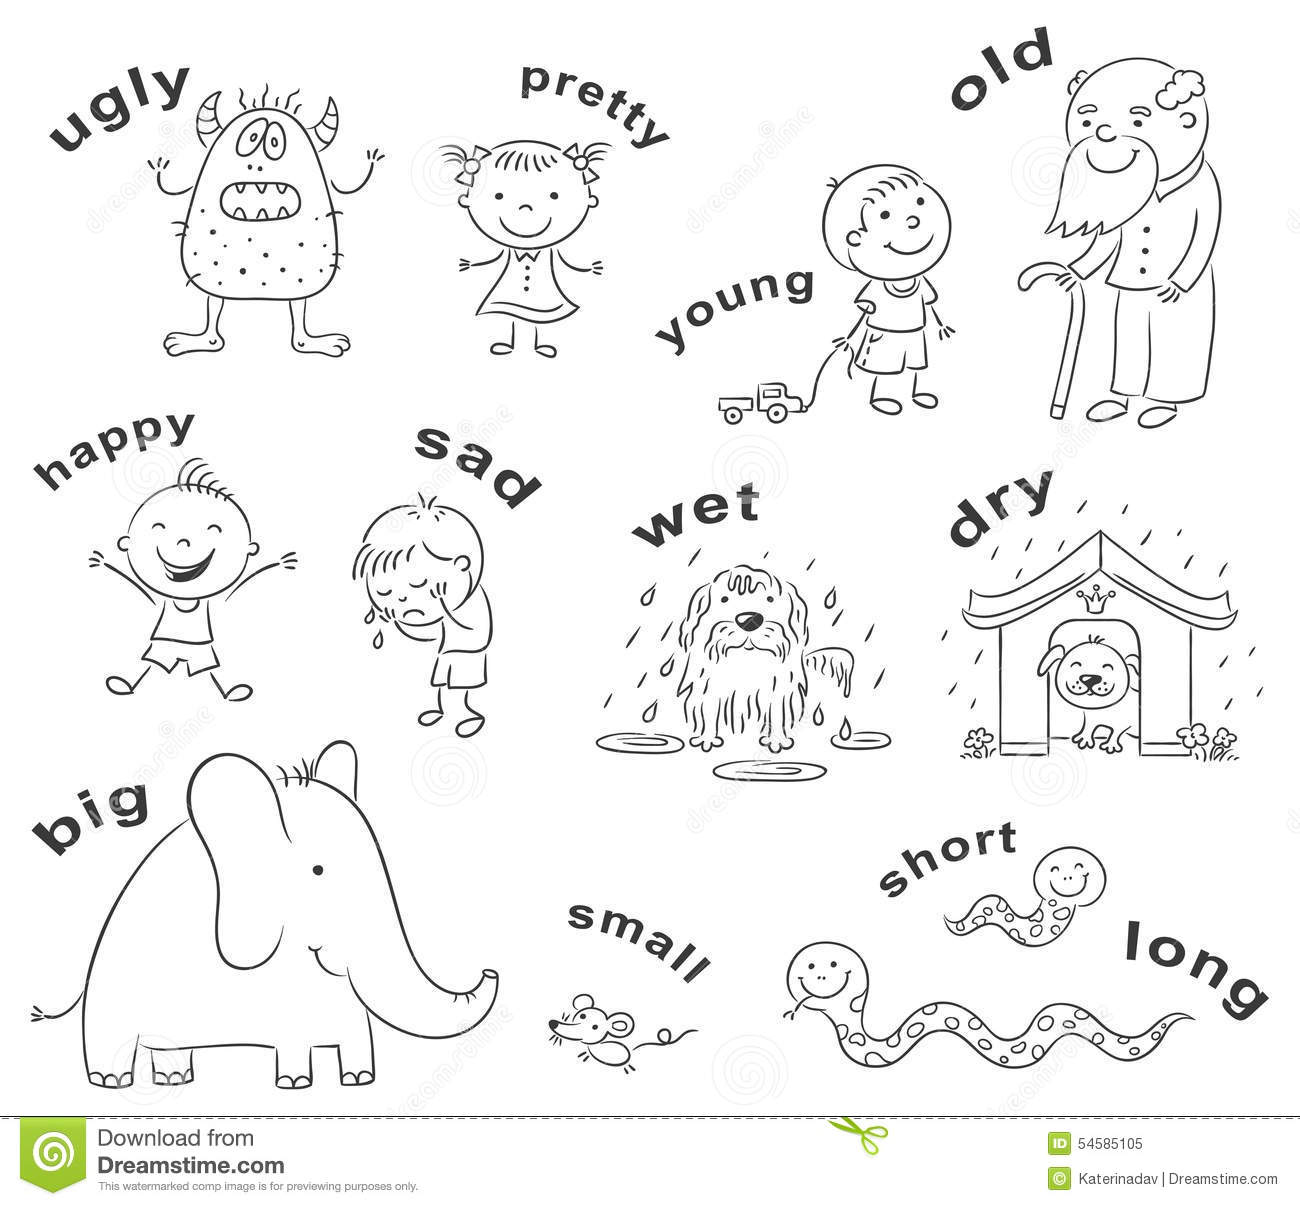 adjective worksheets 1st grade